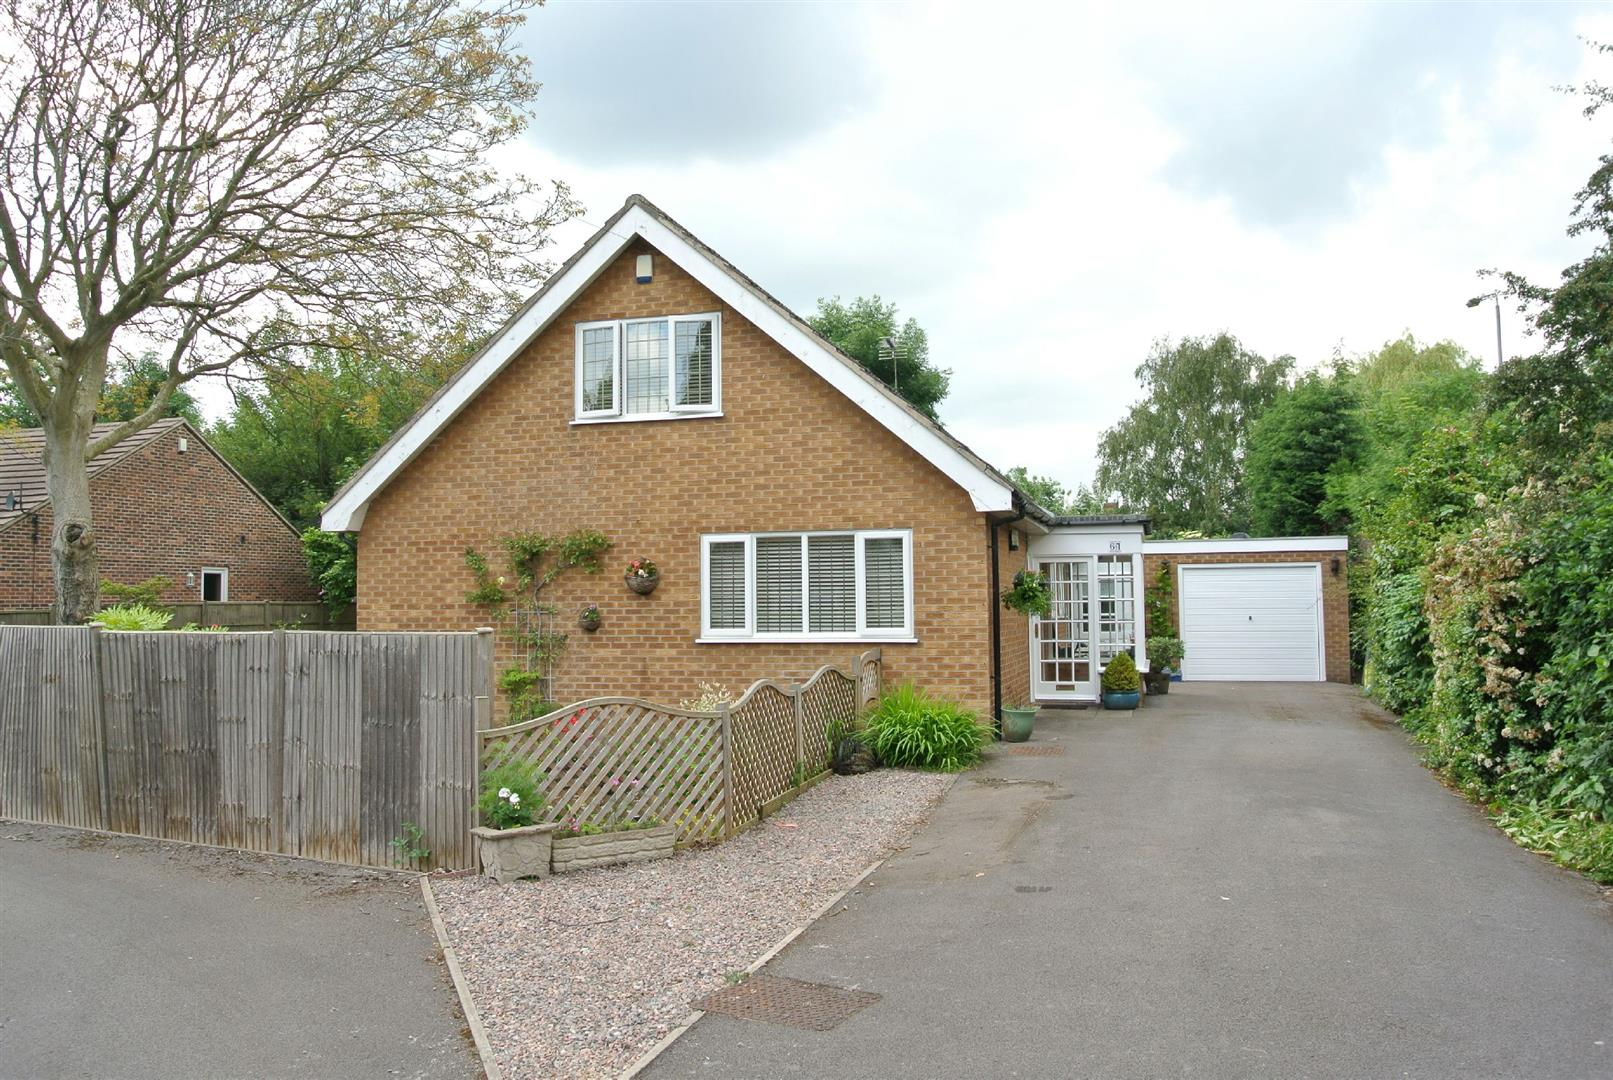 4 Bedrooms Detached House for sale in Barratt Crescent, Attenborough